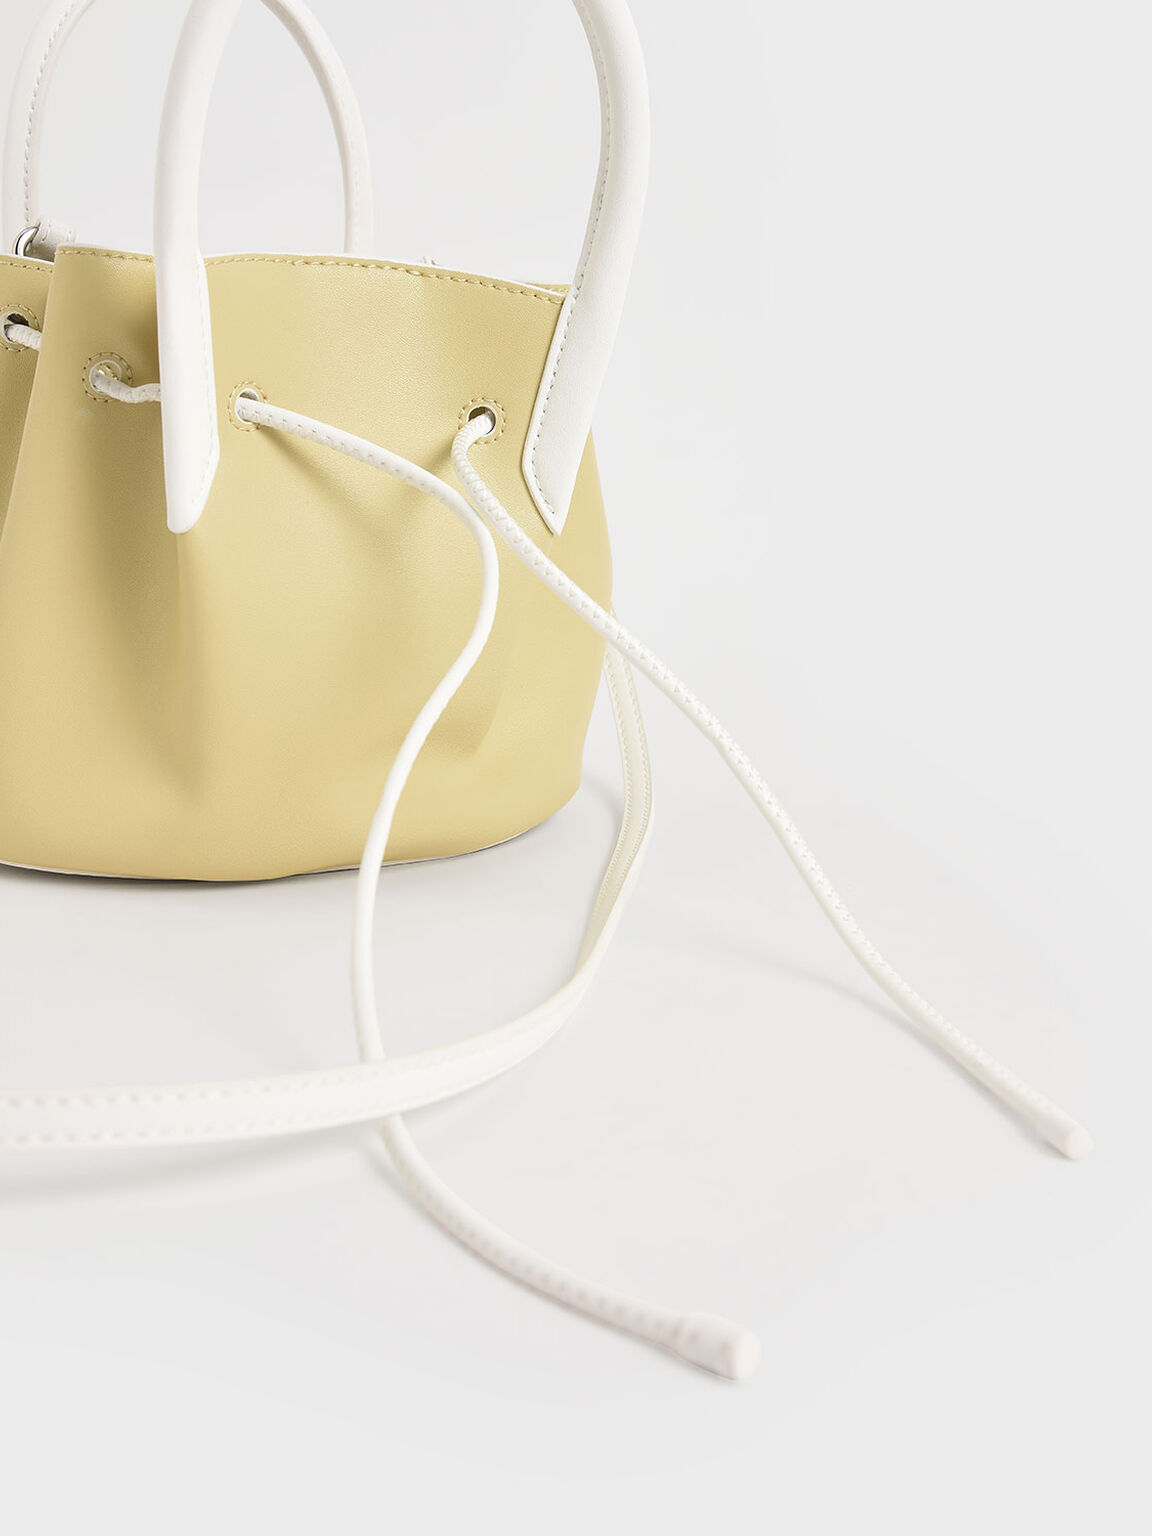 Two-Tone Drawstring Top Handle Bag, Yellow, hi-res